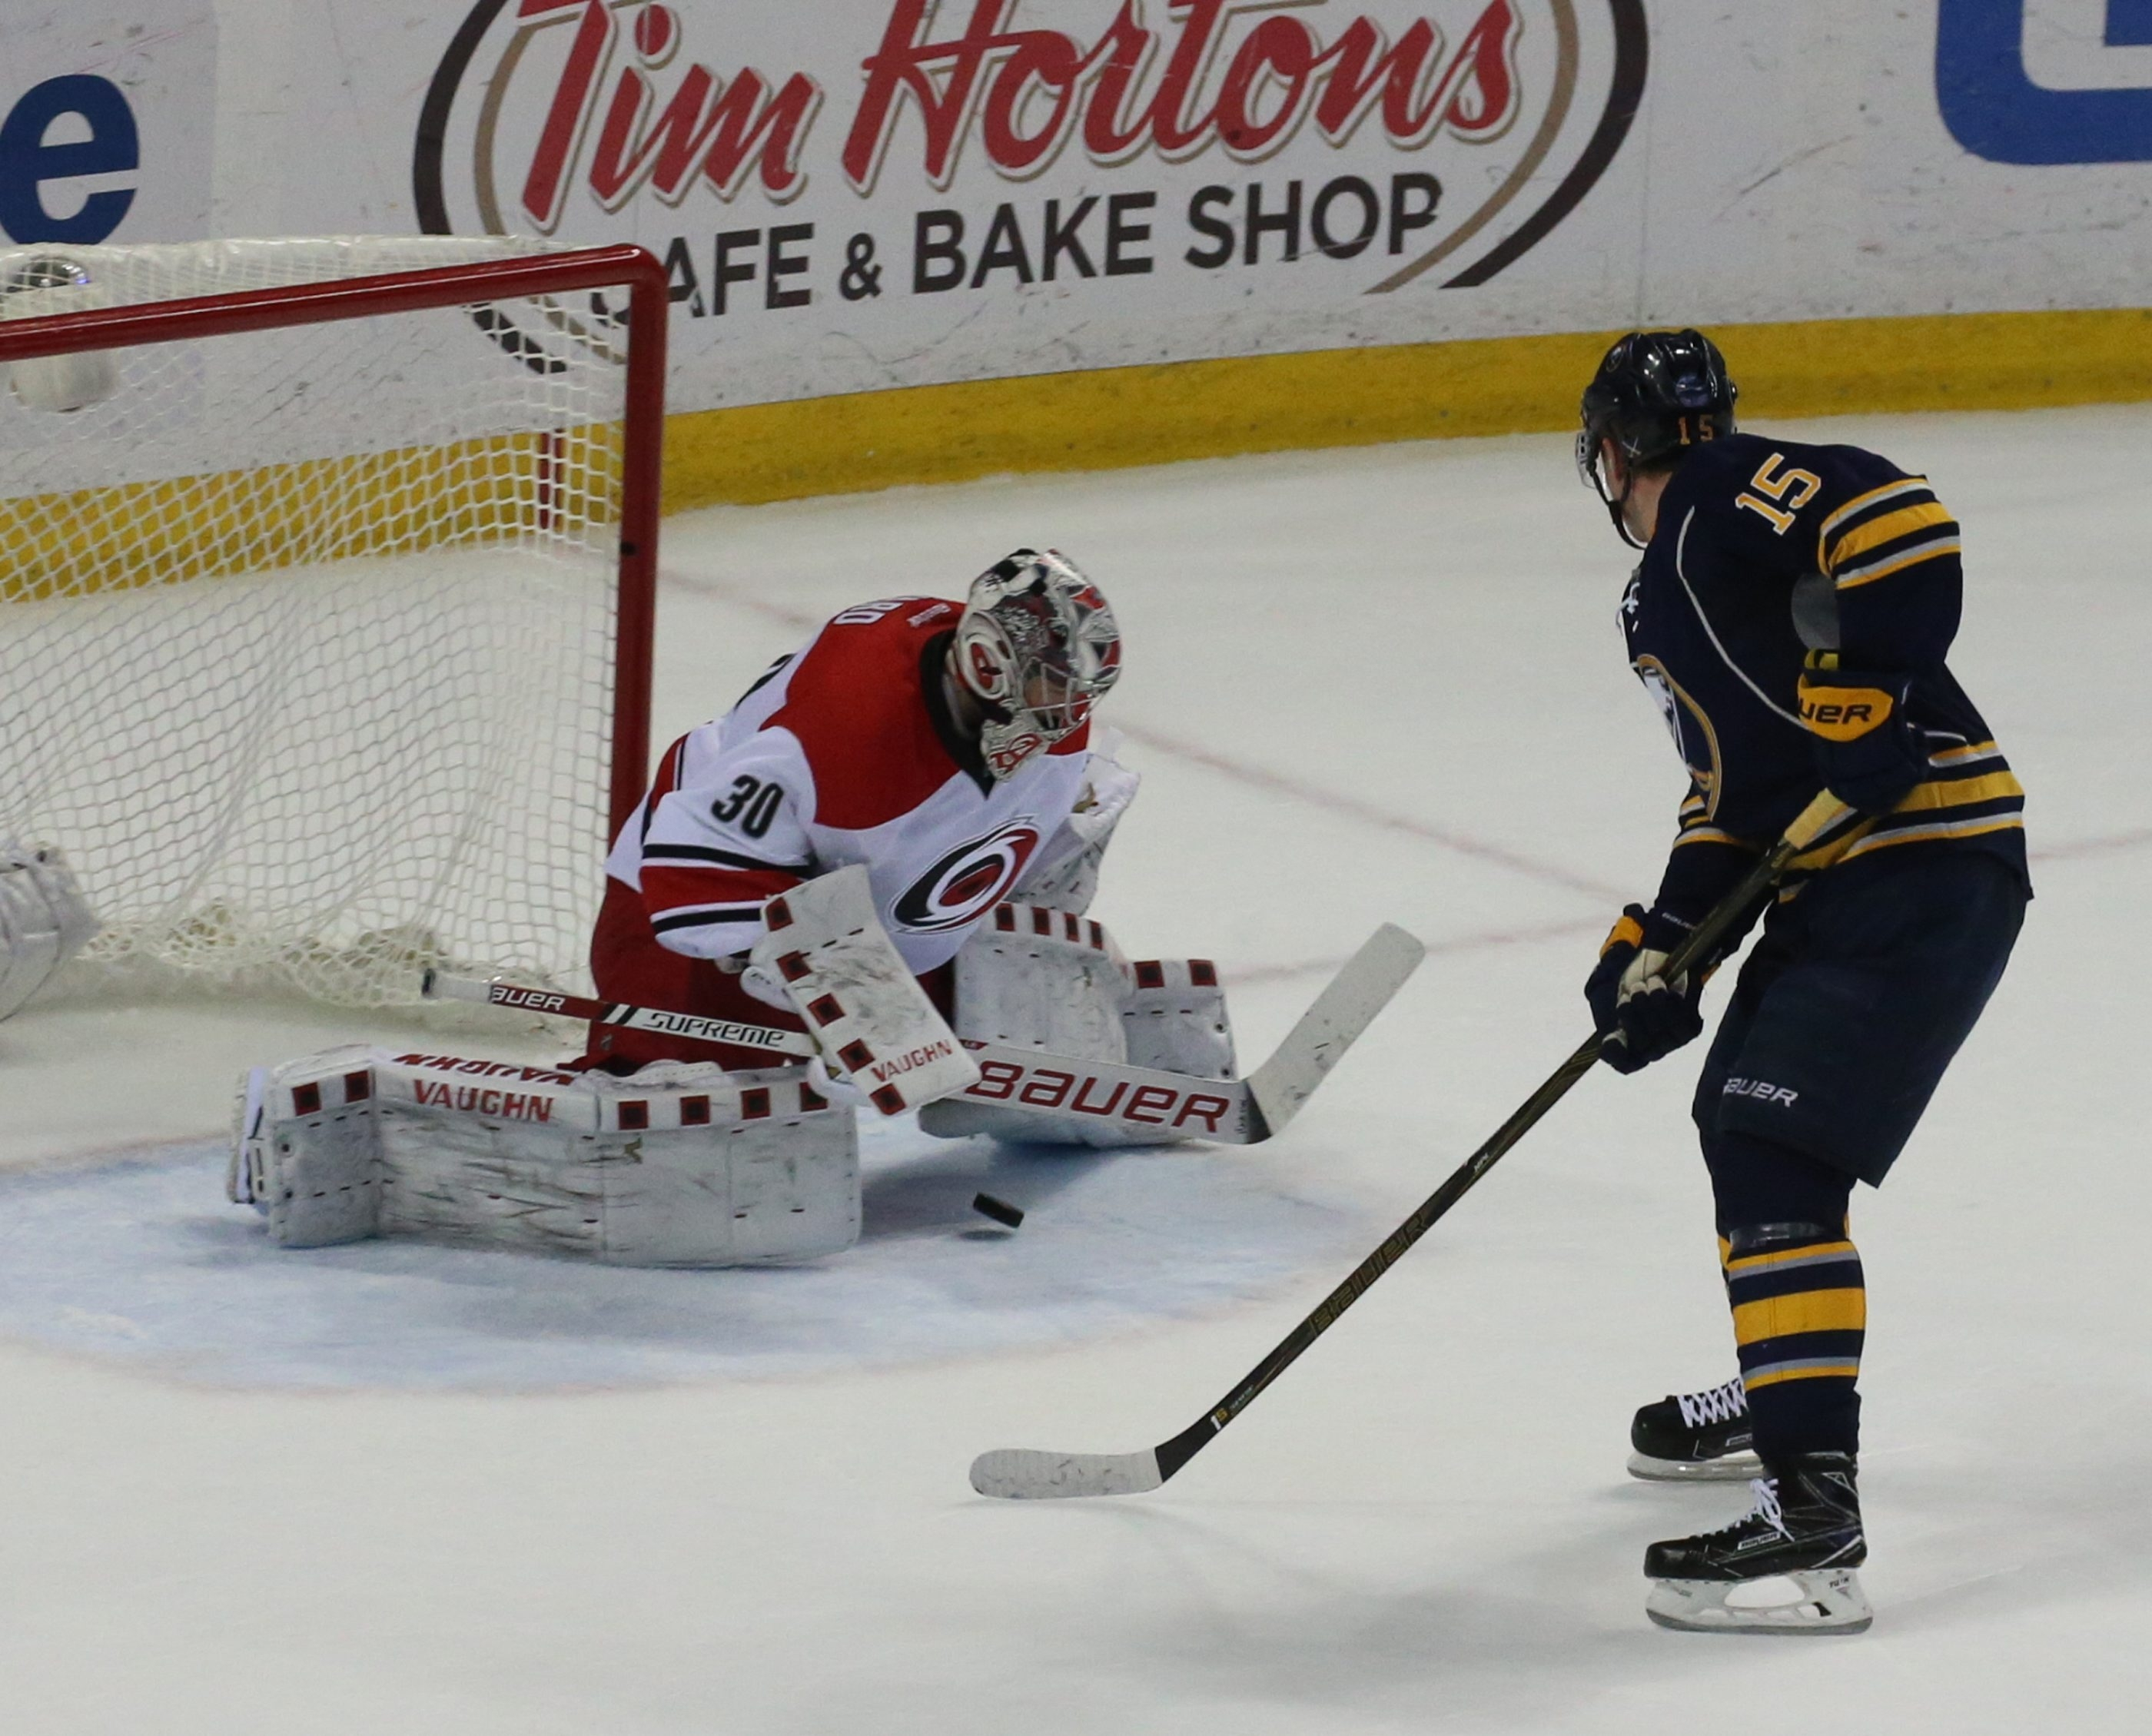 Jack Eichel scores the winning goal for the Sabres against Carolina's Cam Ward after a spectacular pass from Evander Kane.